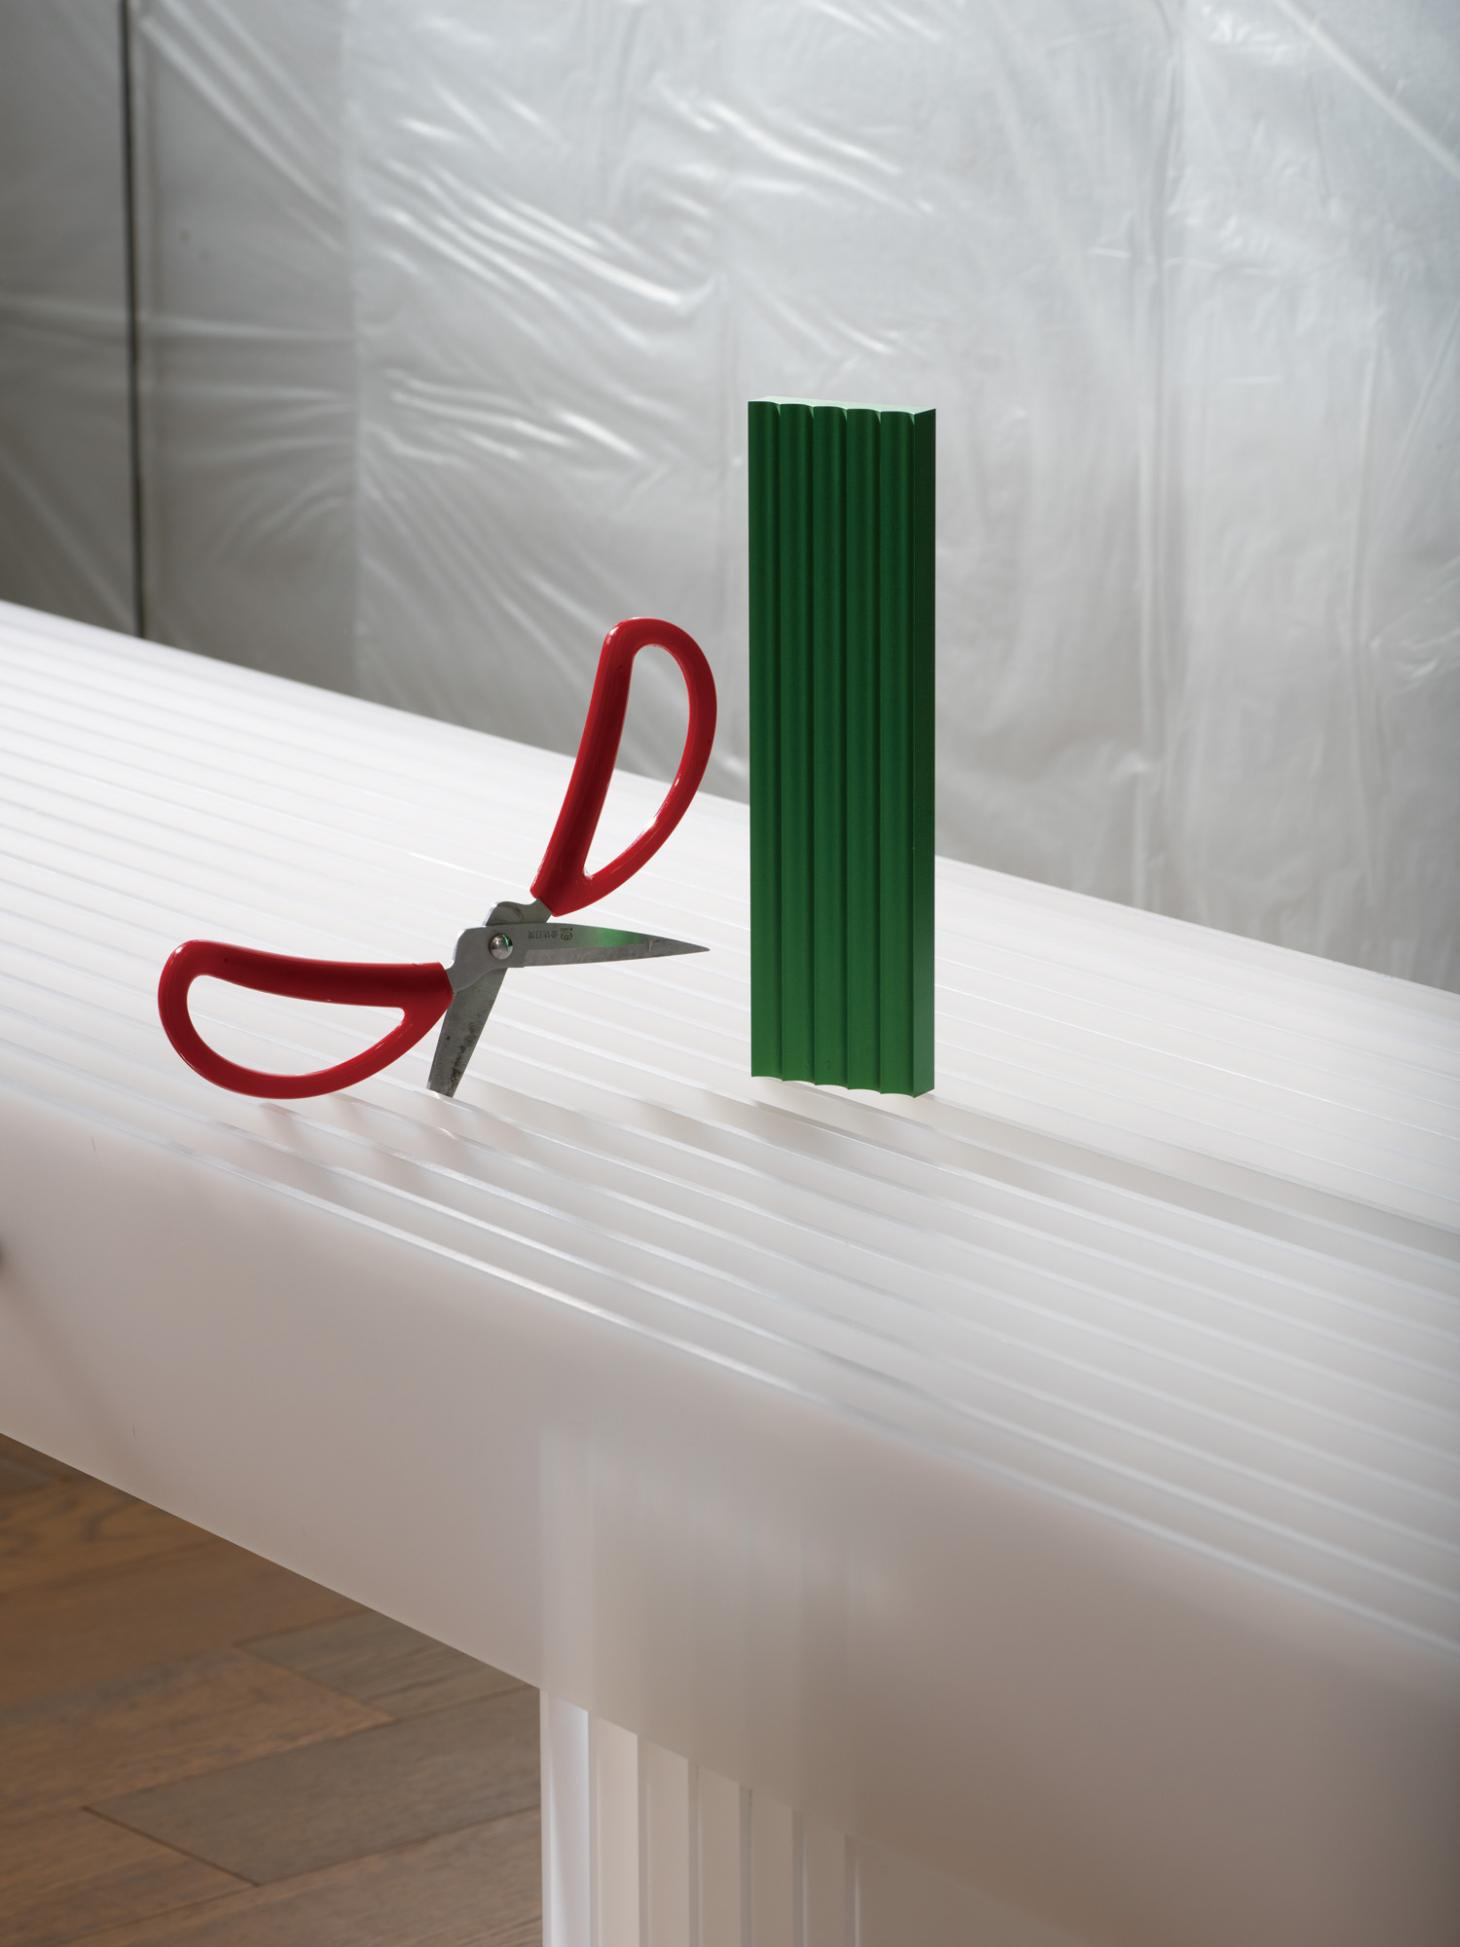 A red pair of scissors and a green aluminium pen rest from the 'Components' series by Mario Tsai are displayed on a 'Grid' bench